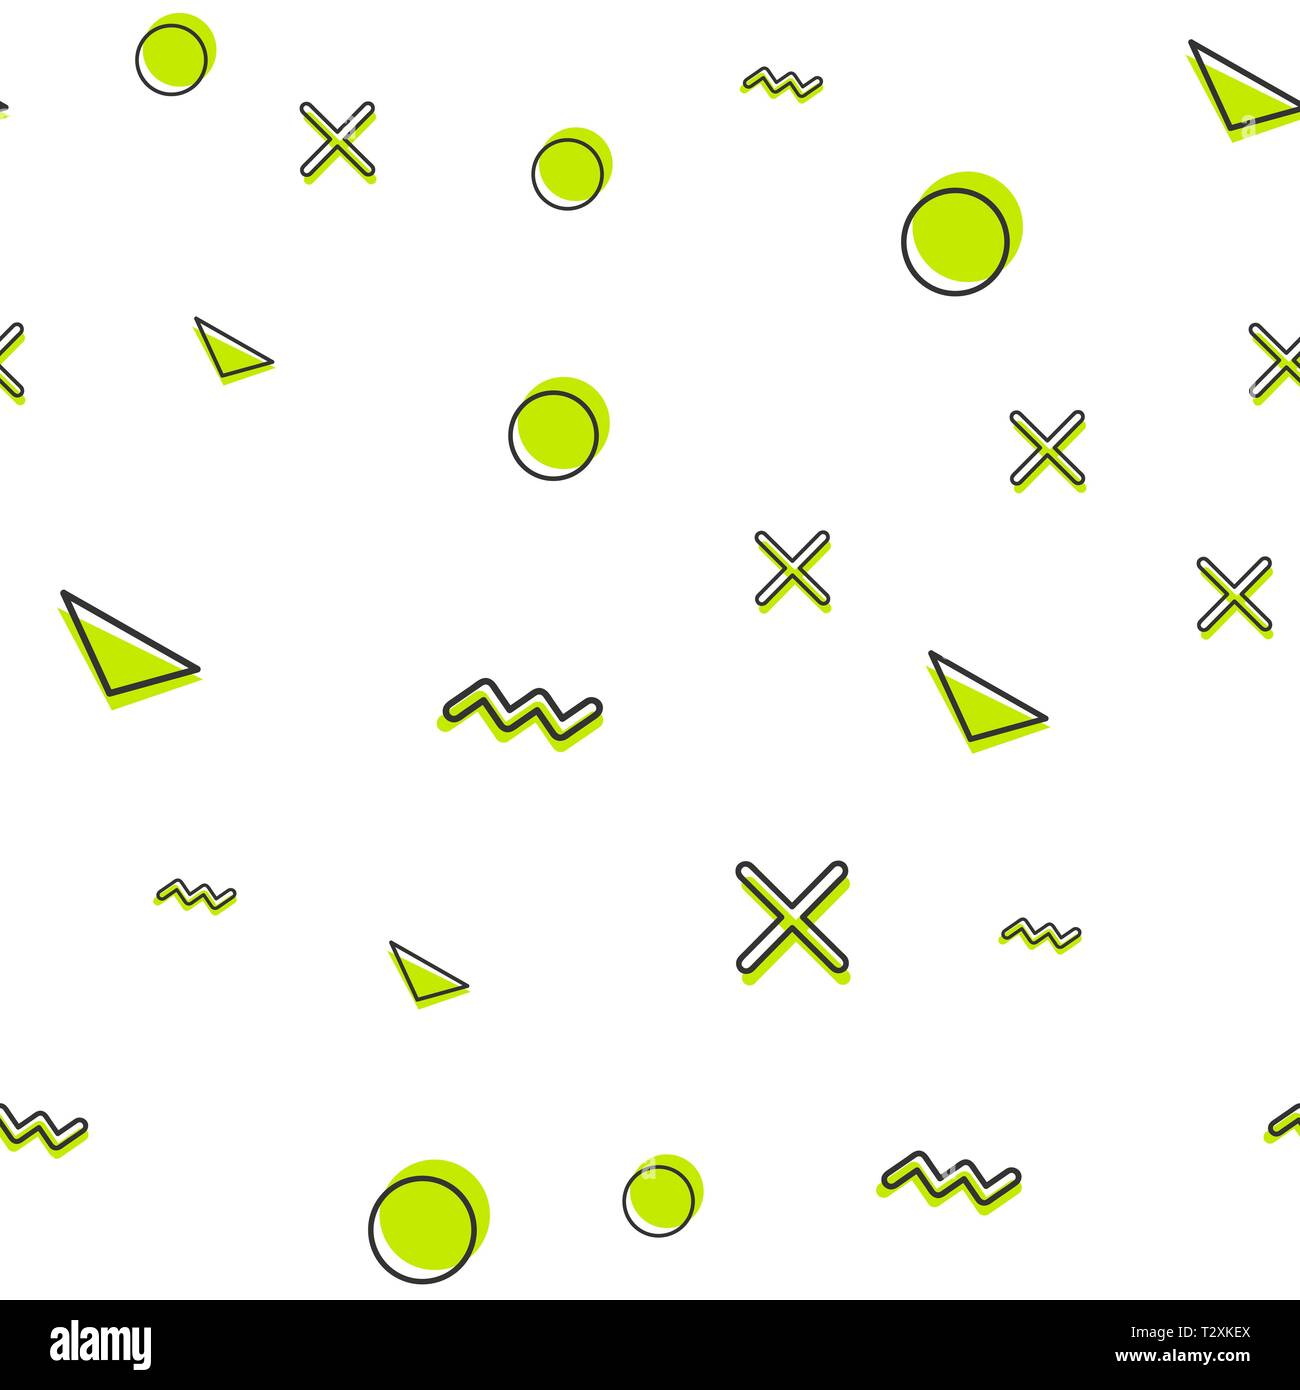 Random geometric shape pattern, abstract background in 80s